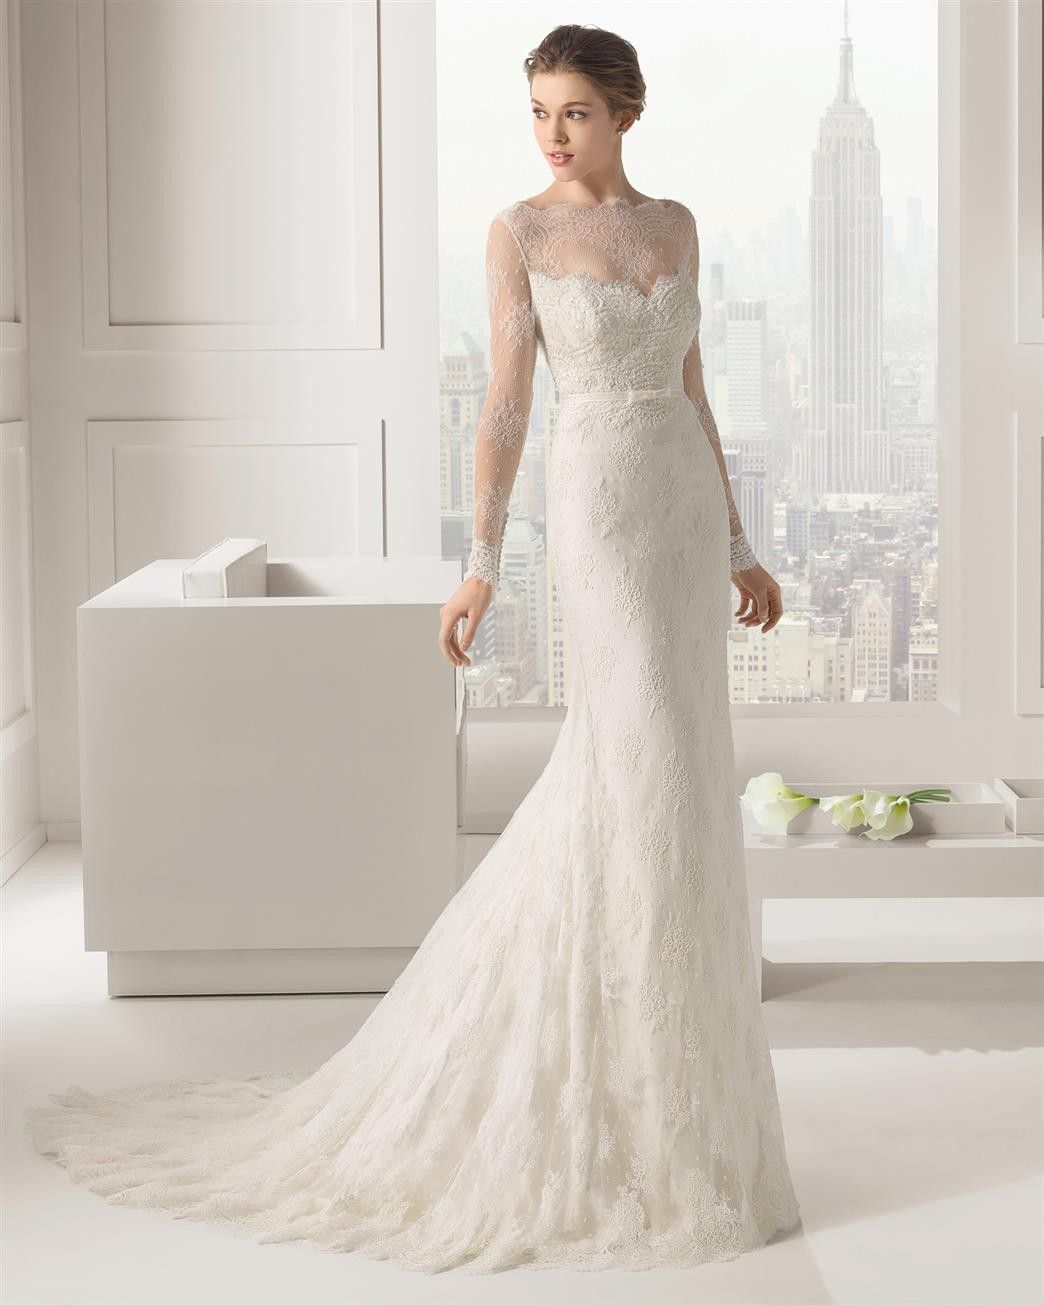 20 Best Hollywood Wedding Dress with Lace Train   Glamourous ...